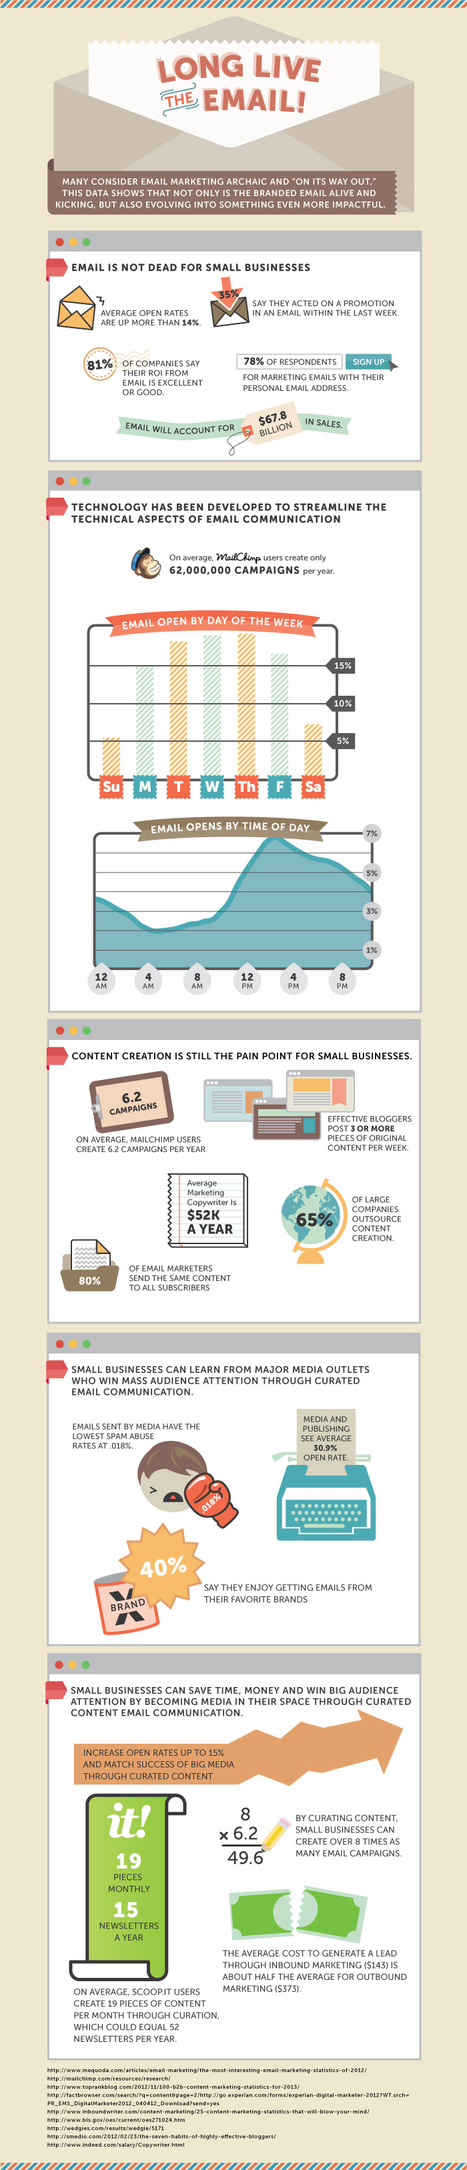 Why Email Is Still Alive [Infographic] - SocialTimes | Digital Culture Social Software | Scoop.it